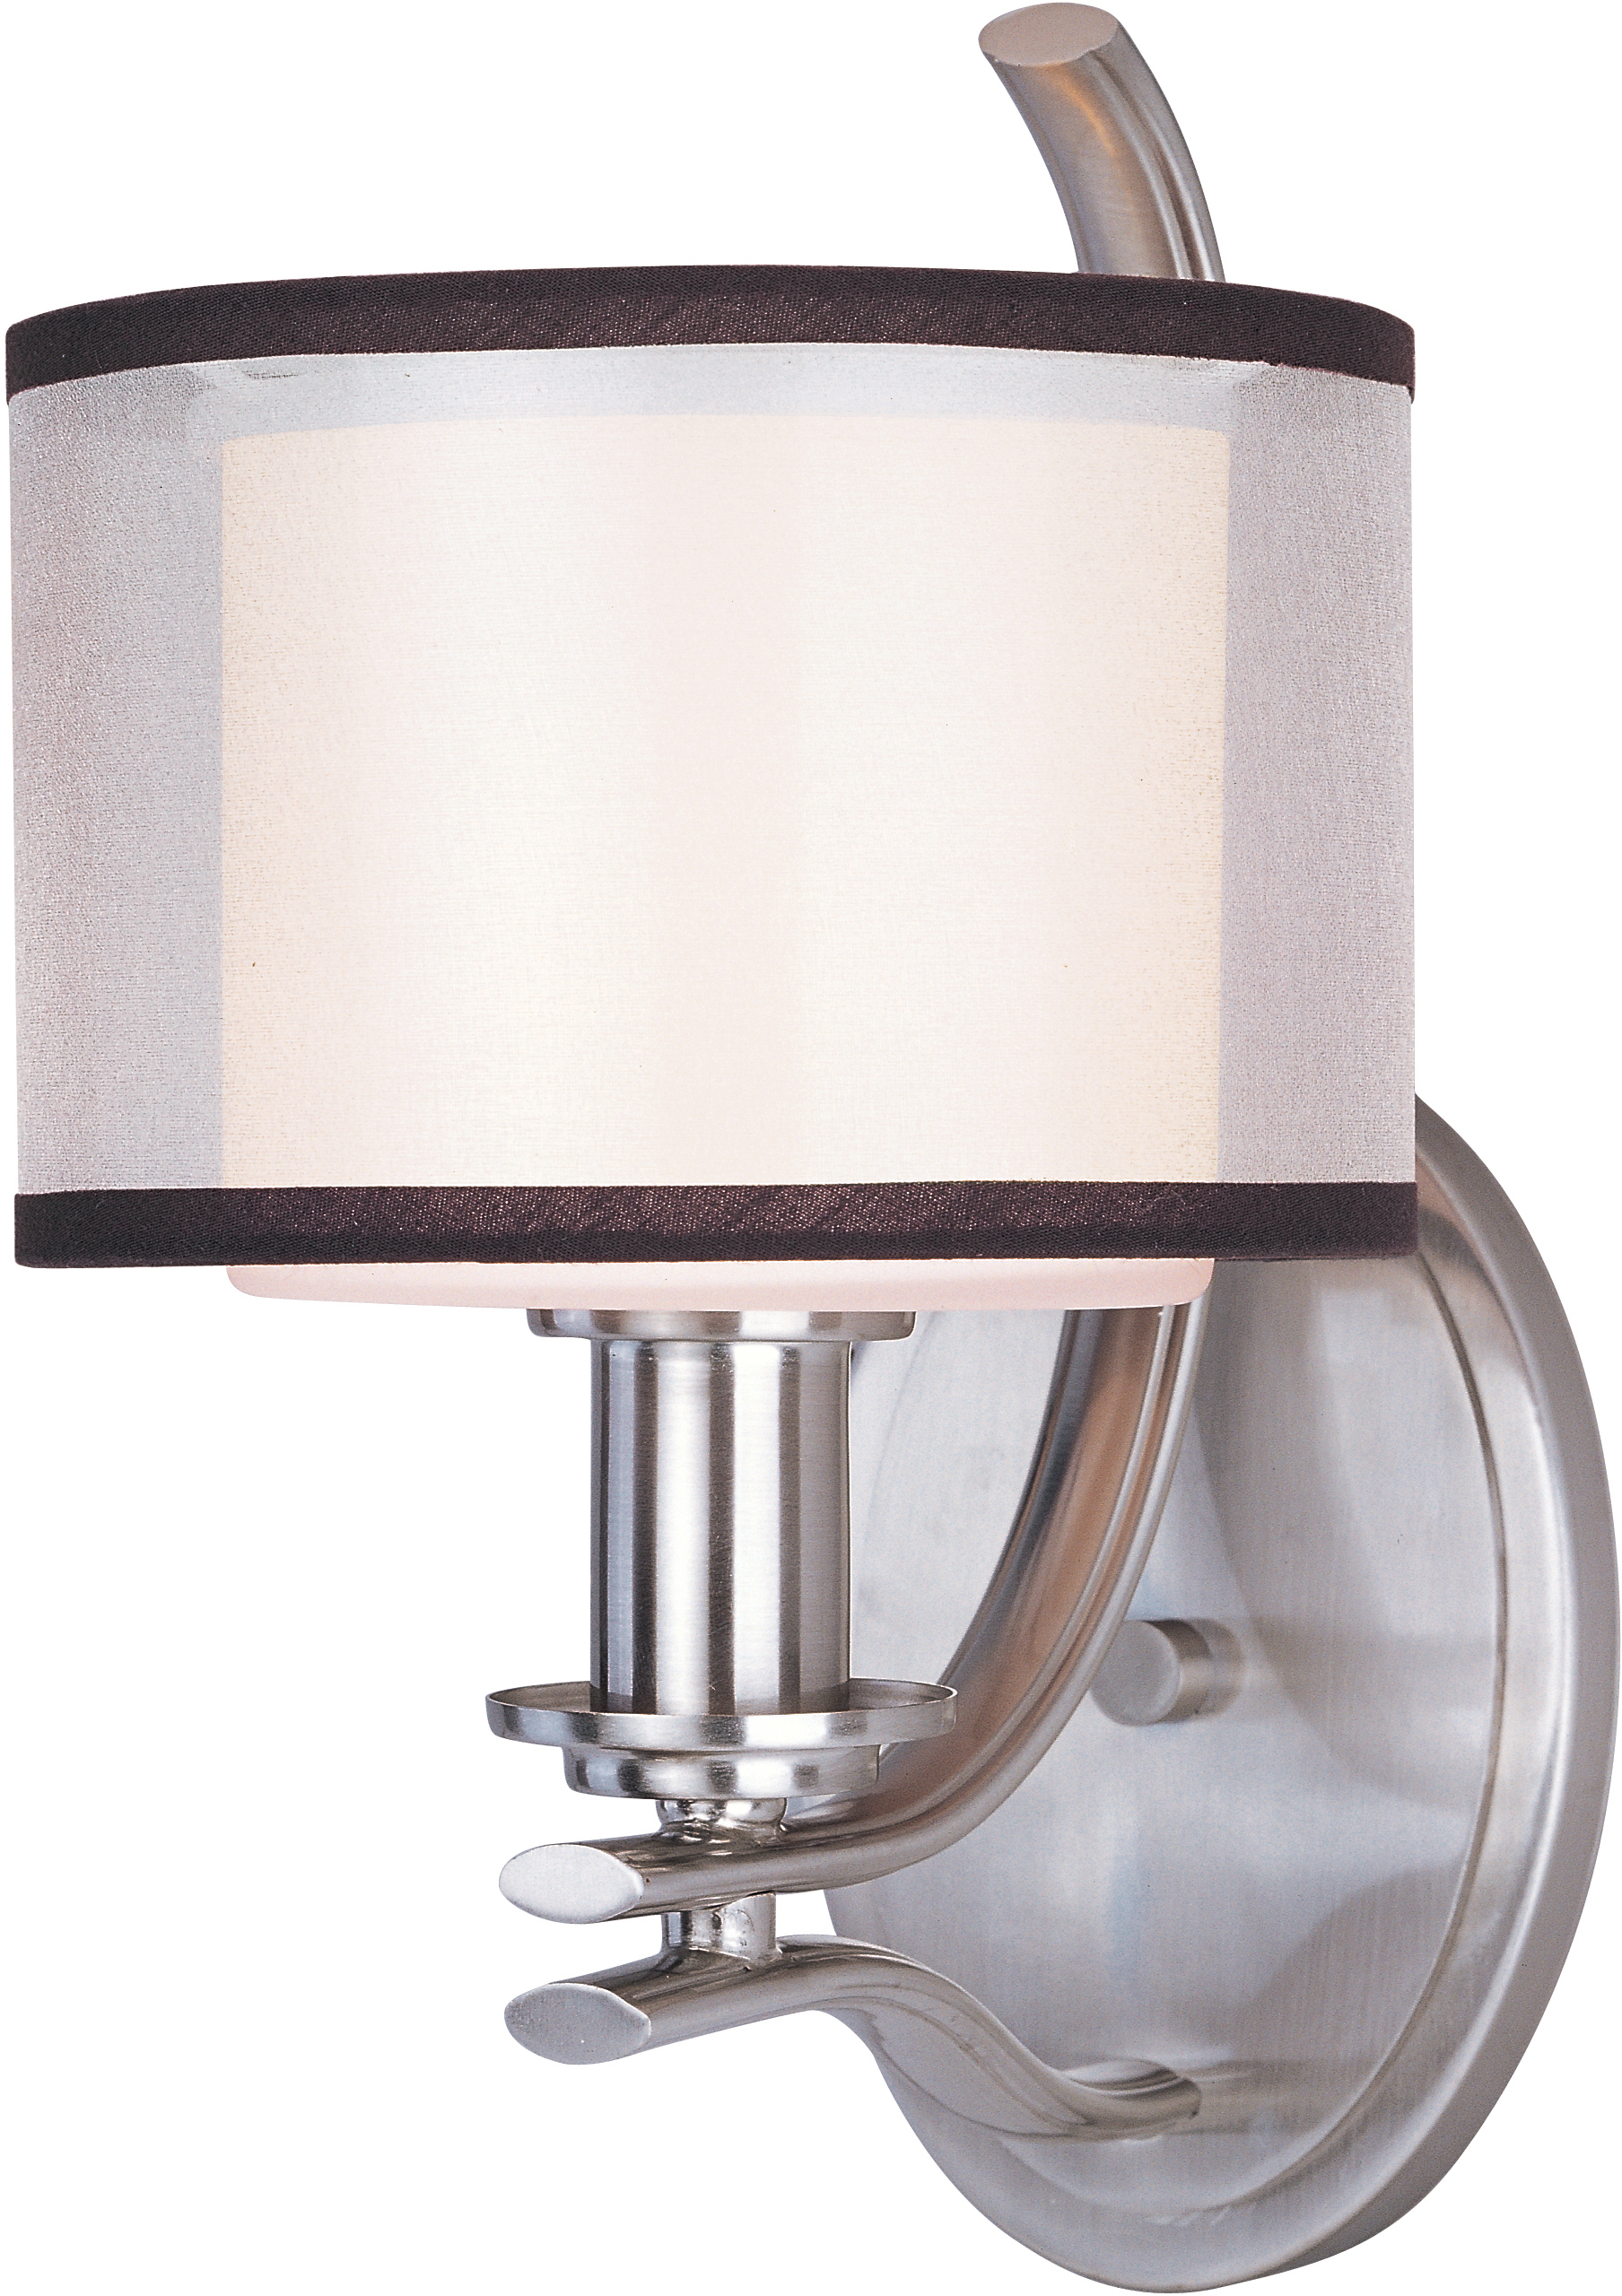 Orion Wall Sconce | Maxim Lighting